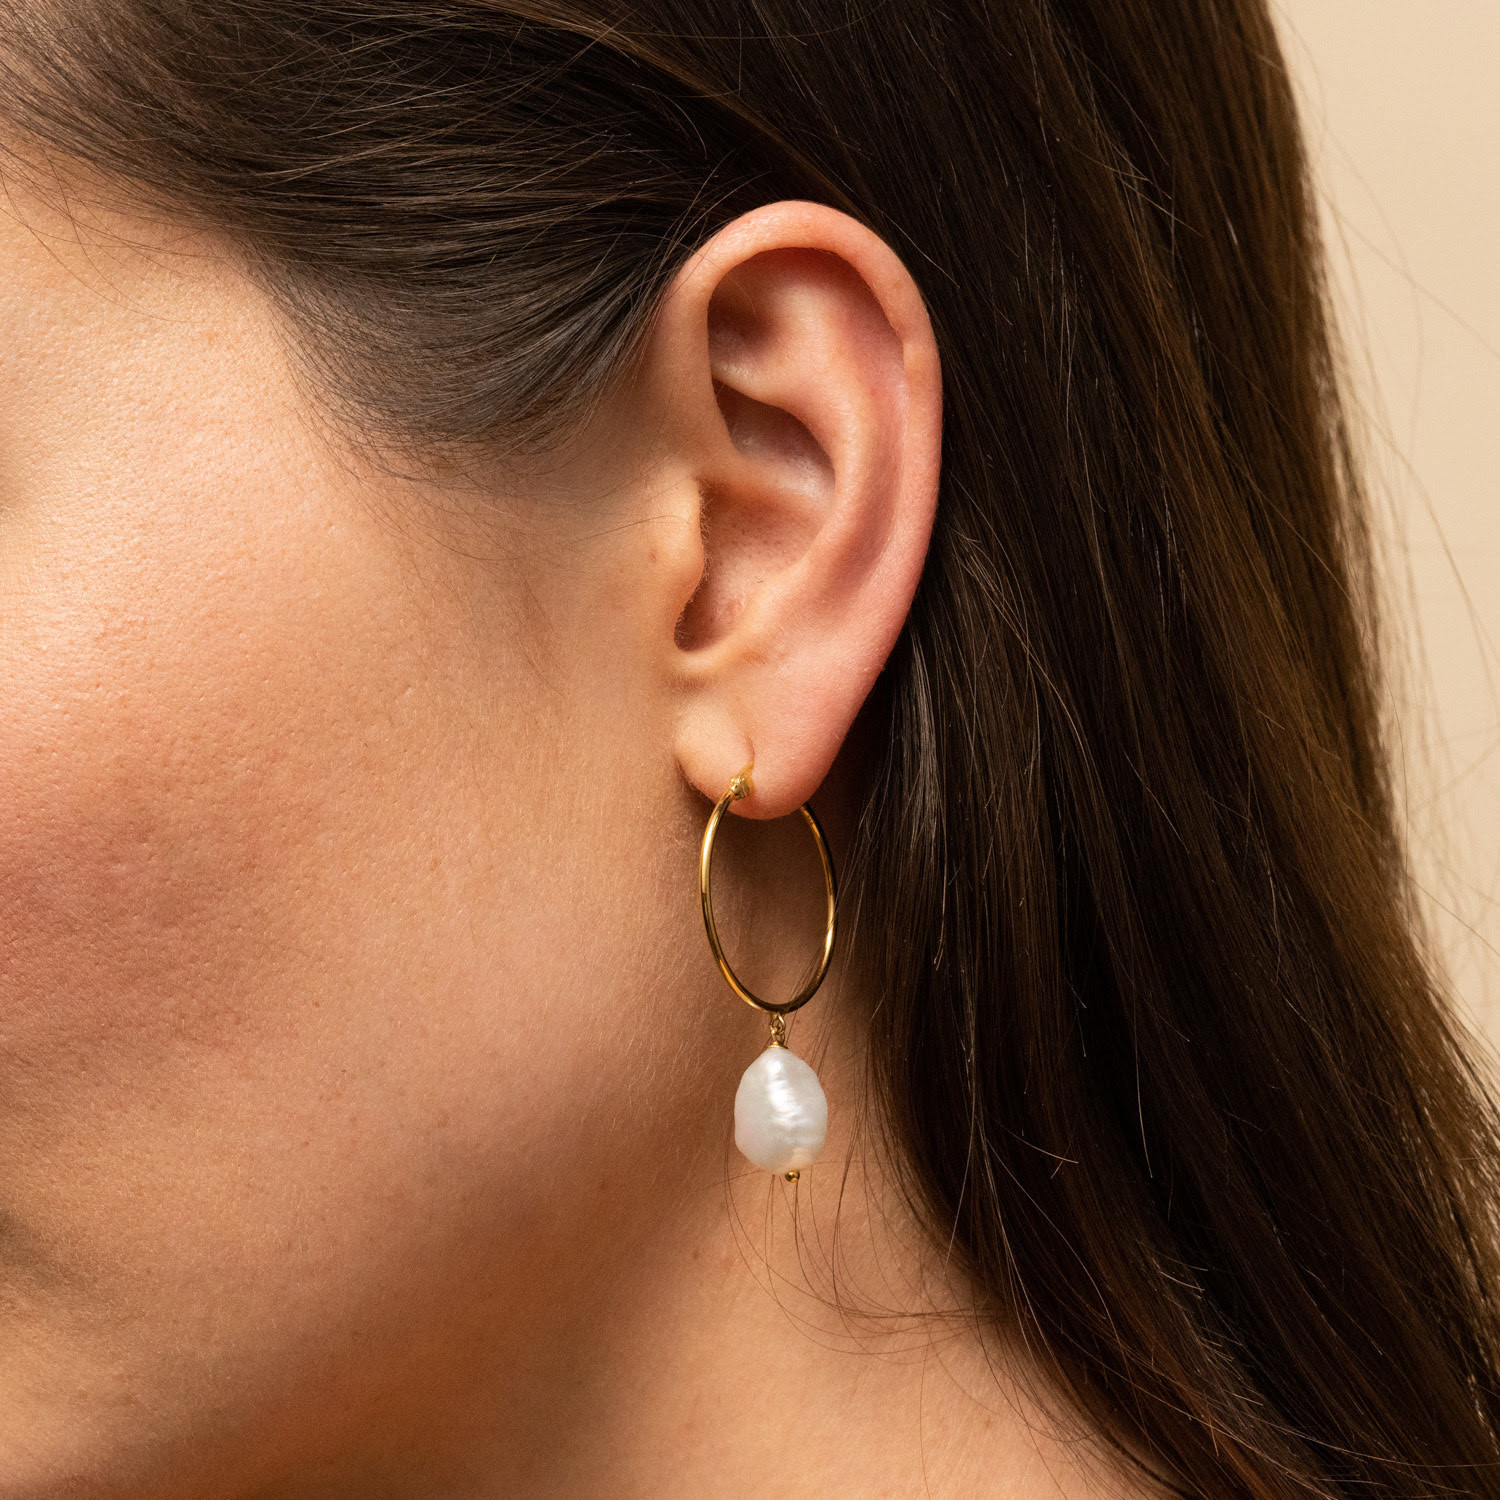 model wearing a gold hoop earring with a large pearl on the end